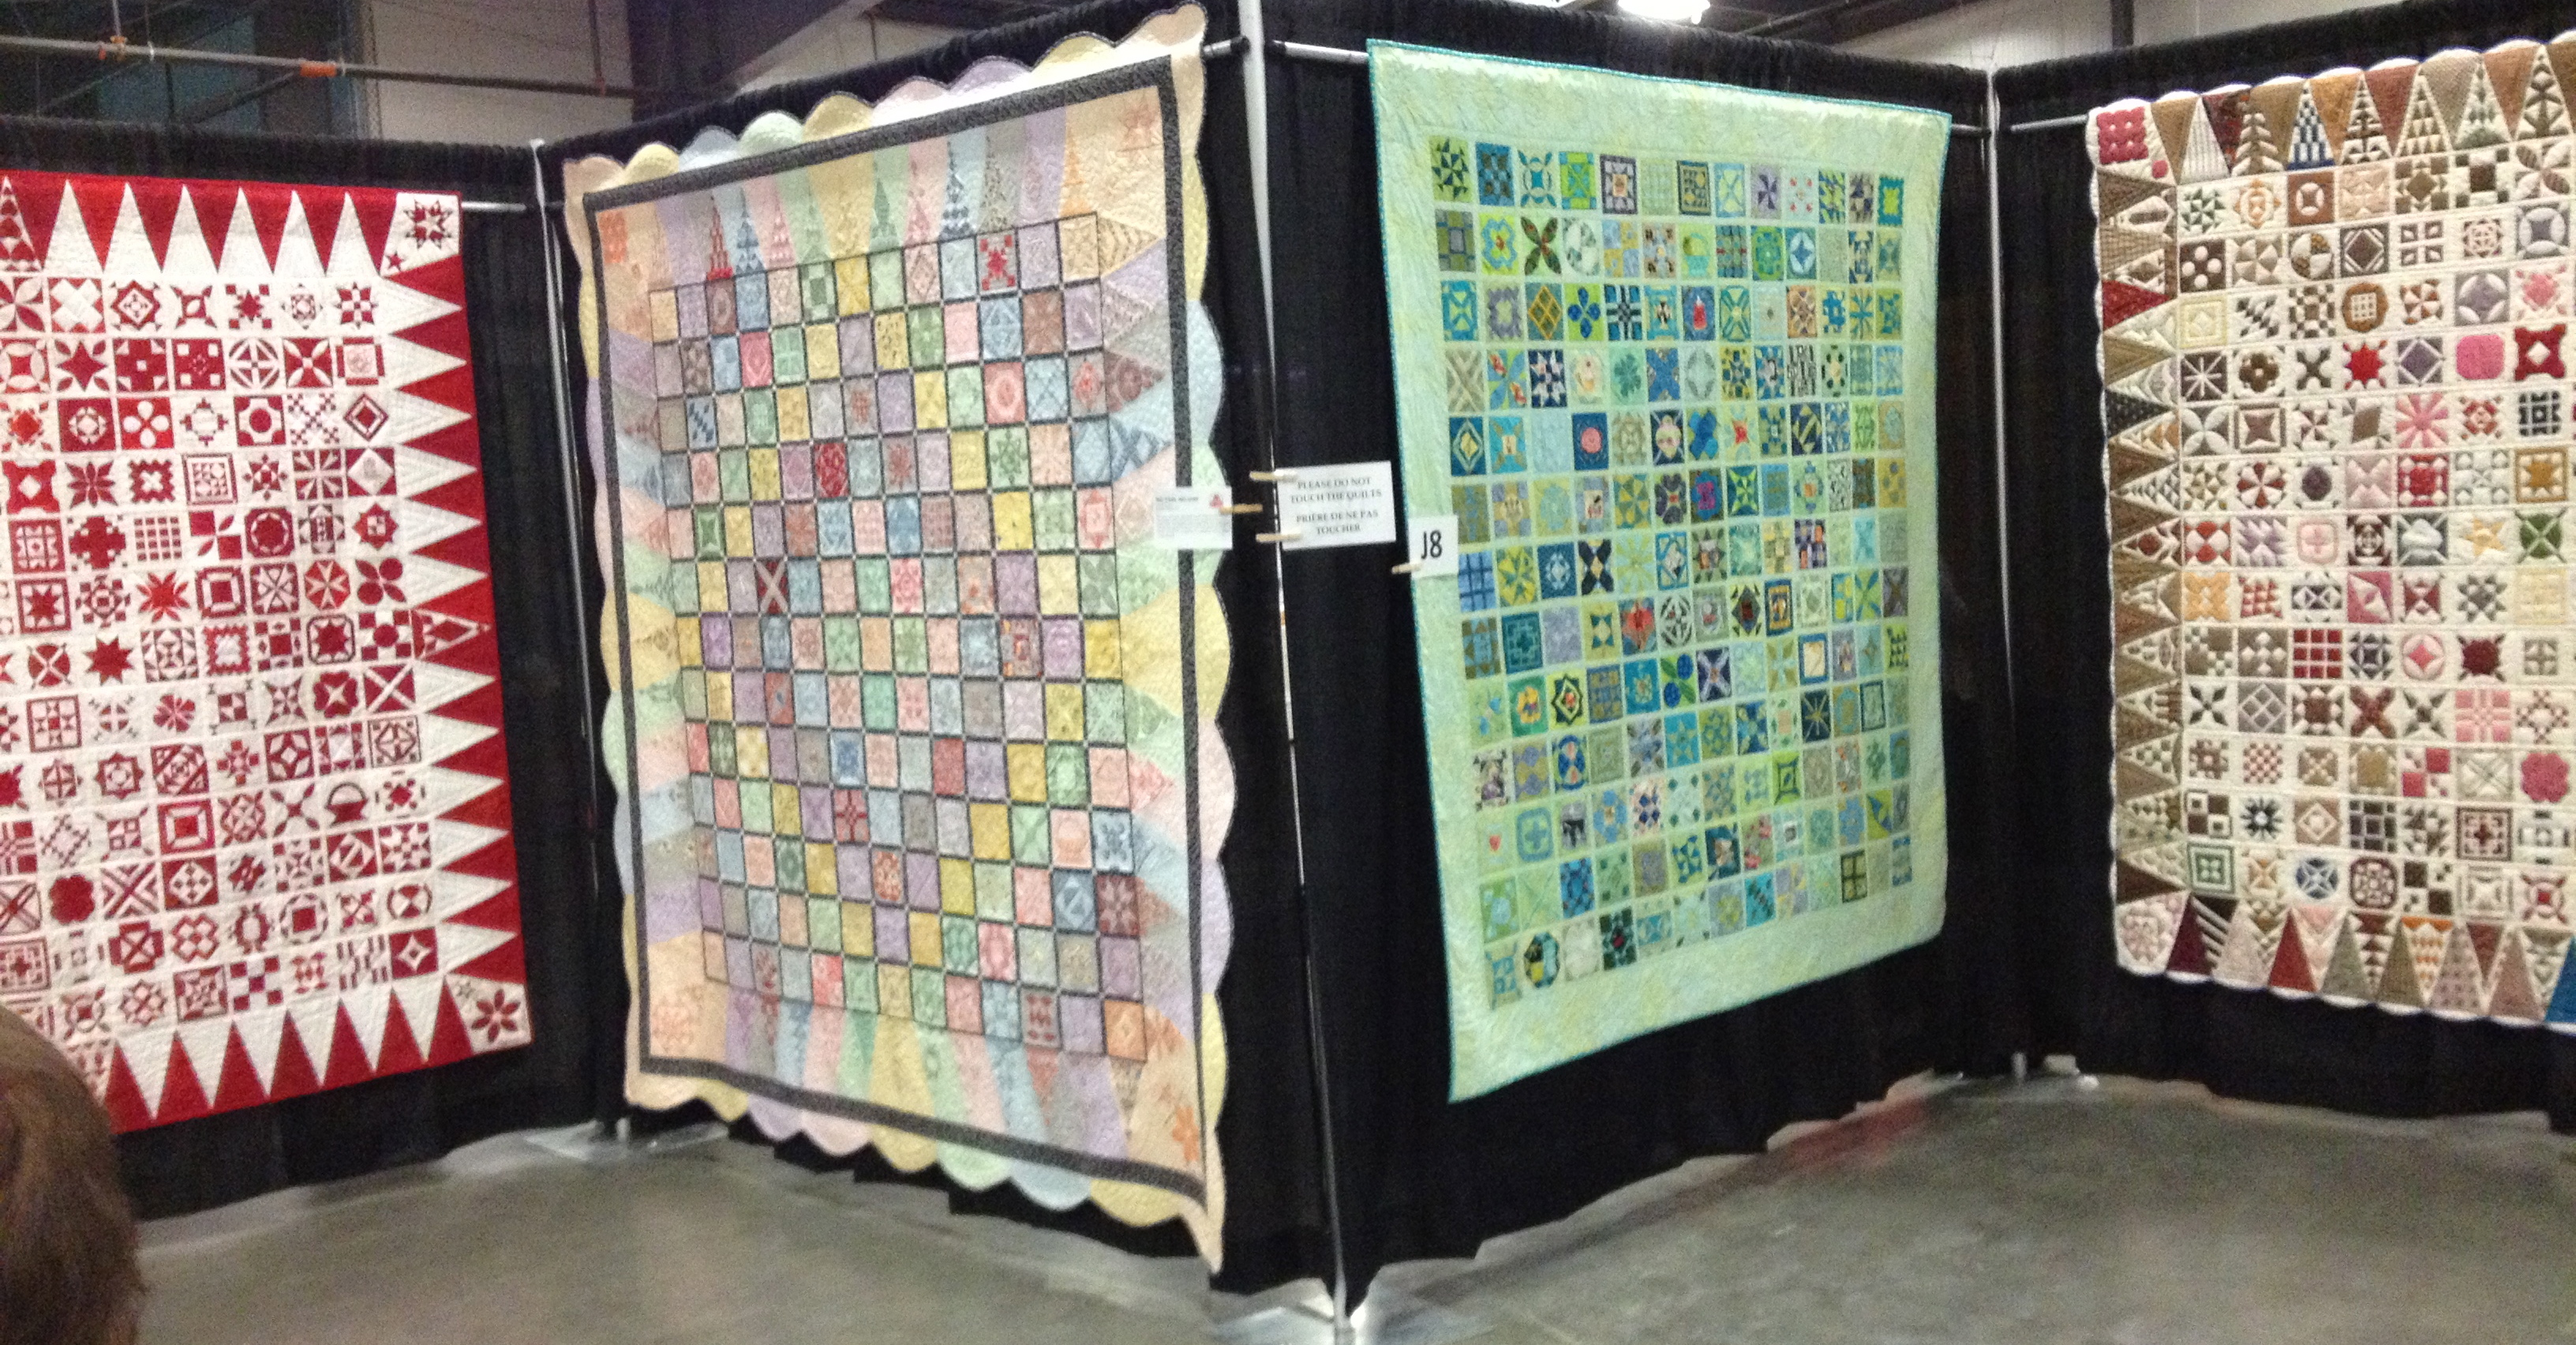 Vermont Quilt Festival | I Finally Have Time : vermont quilt festival - Adamdwight.com